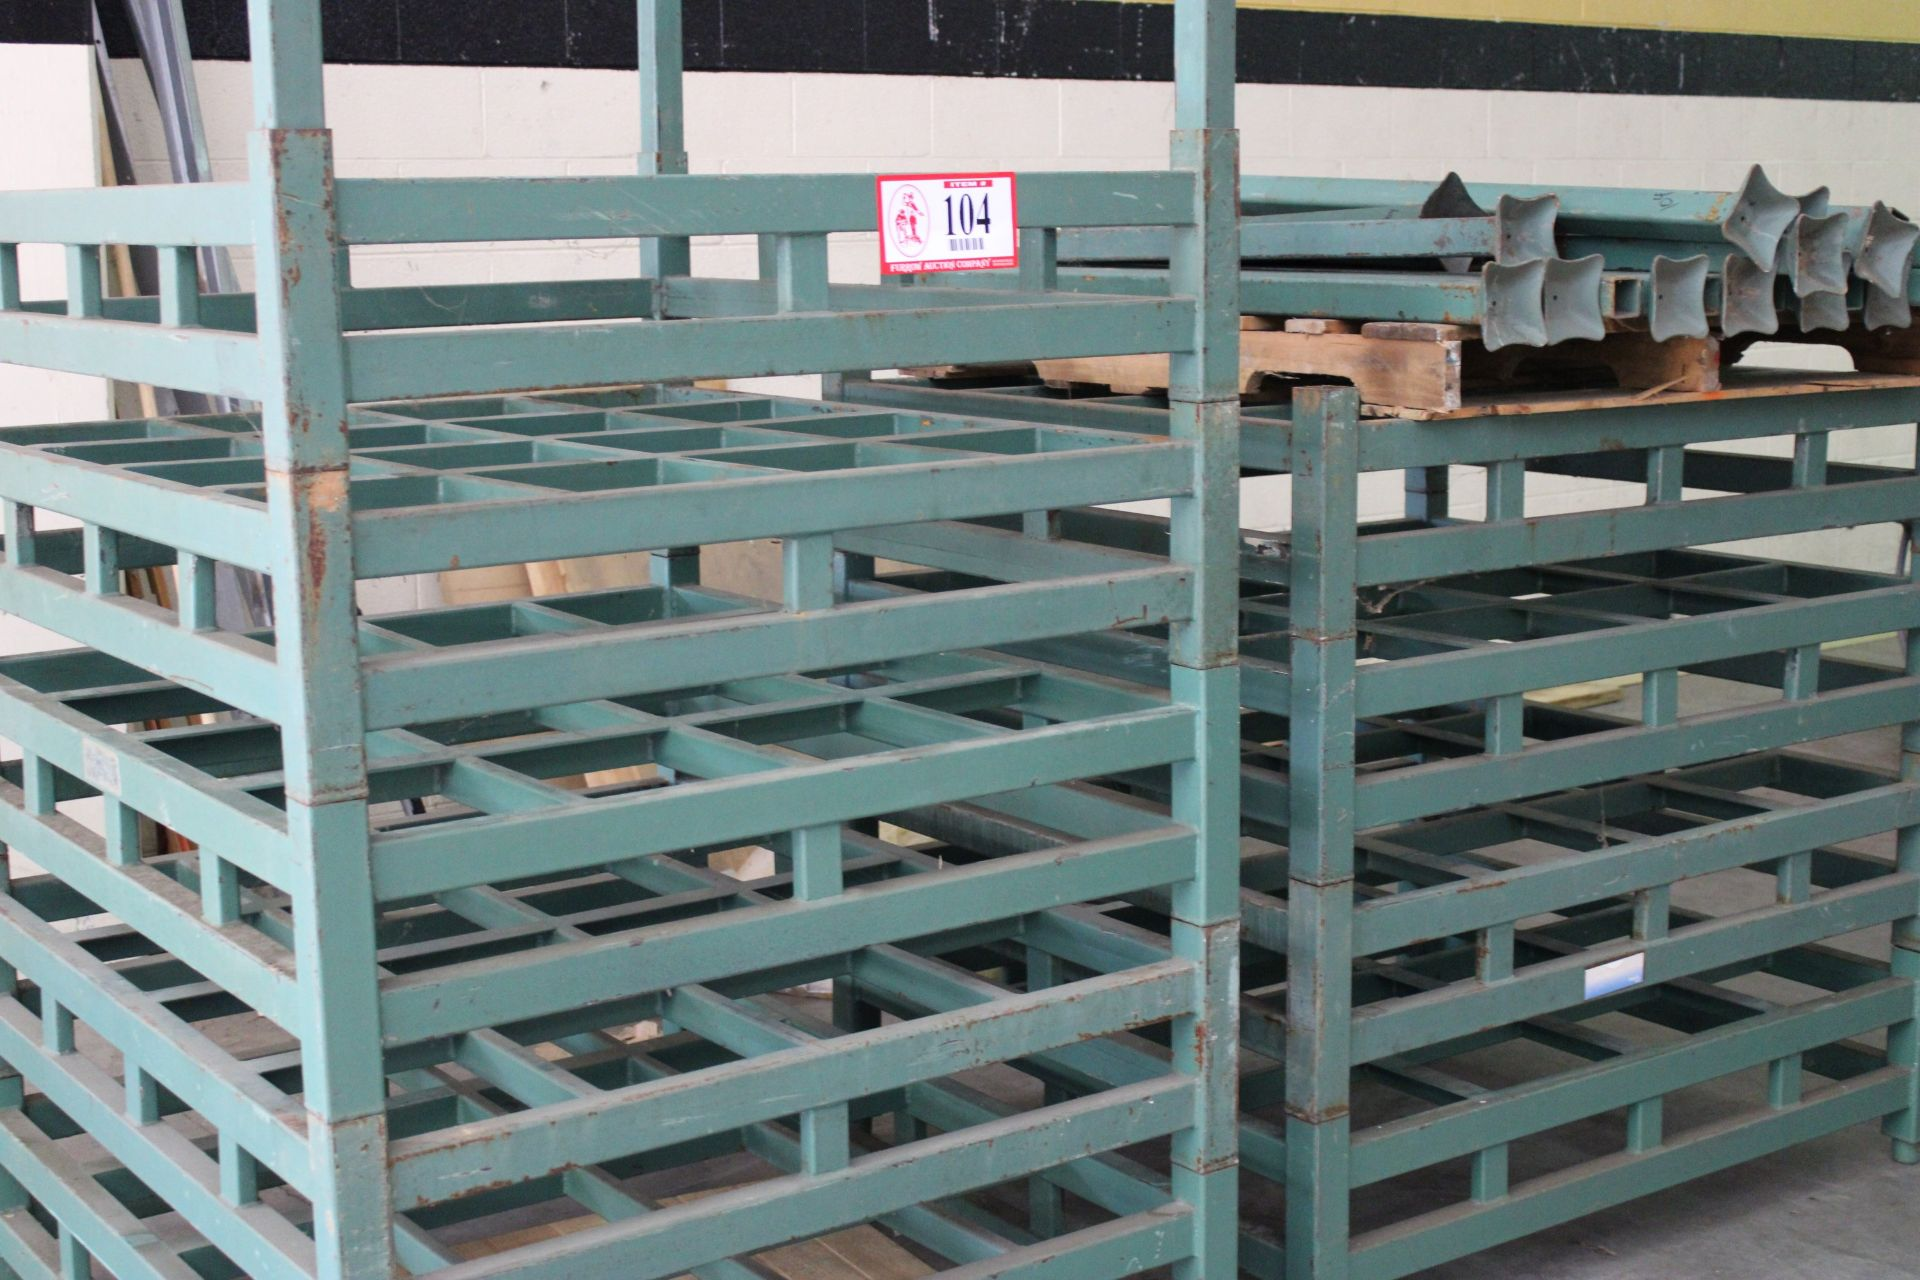 """QTY 11 -Derick-China Steel Stacking Racking, 5ft - 52"""" x 45"""" w/ Stacking Posts, Designed to hold two - Image 3 of 3"""